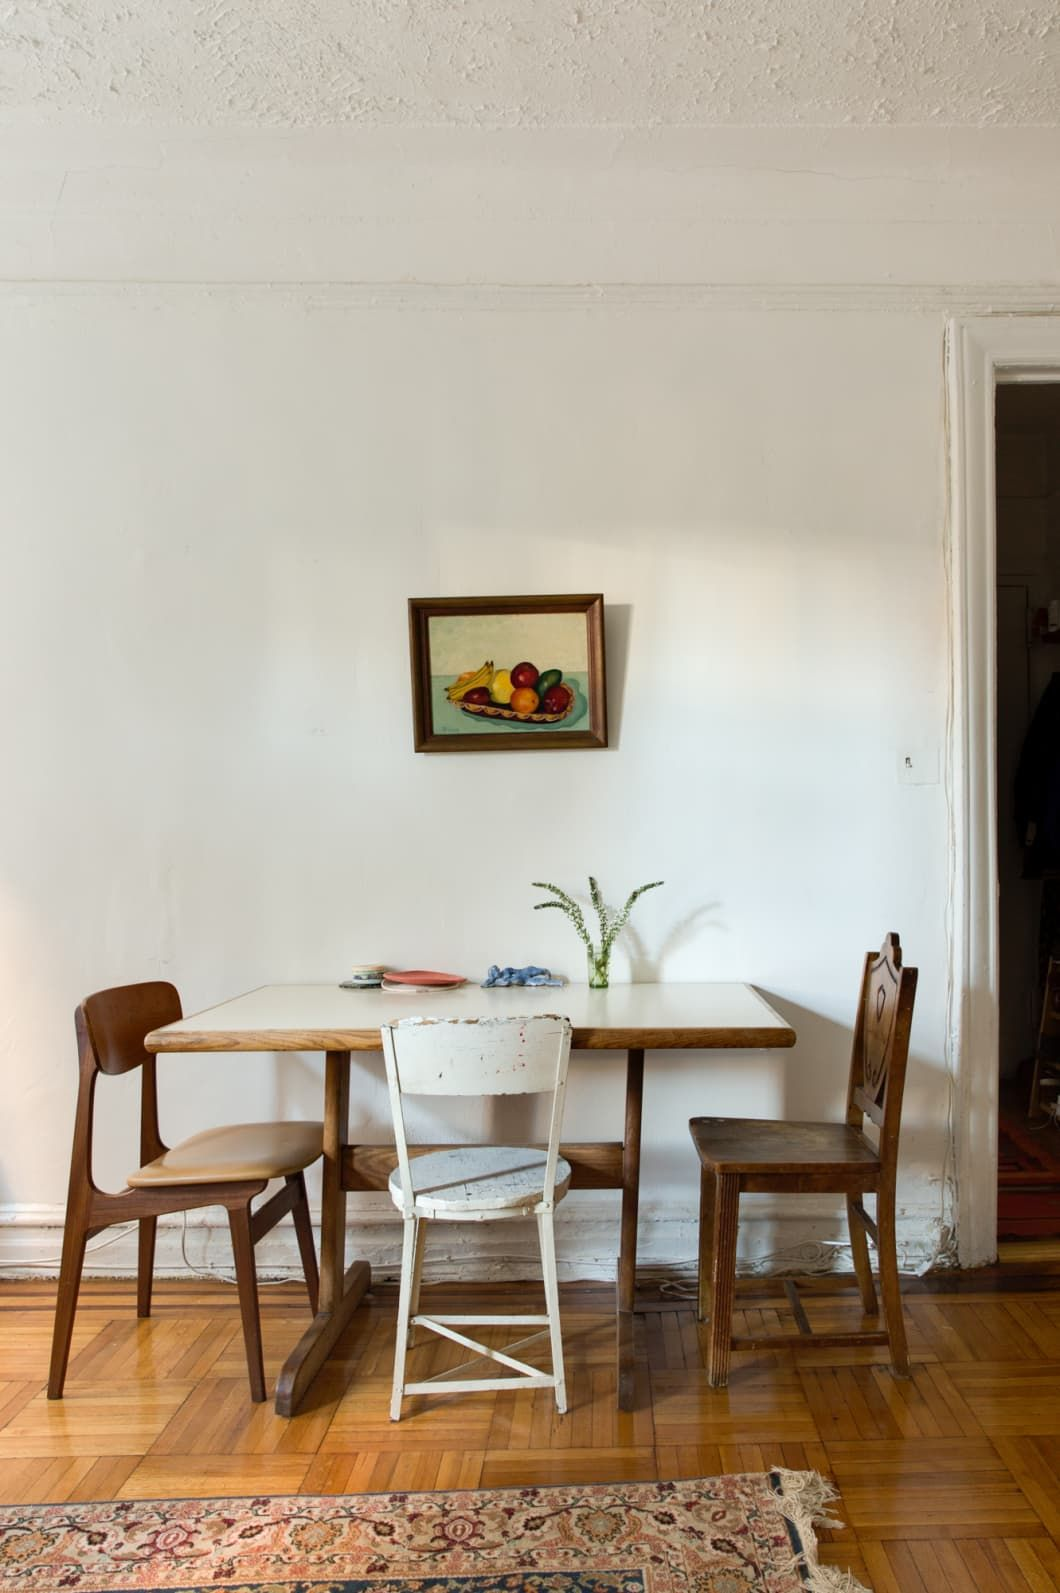 The Outdated Dining Room Trend Slowly Disappearing From